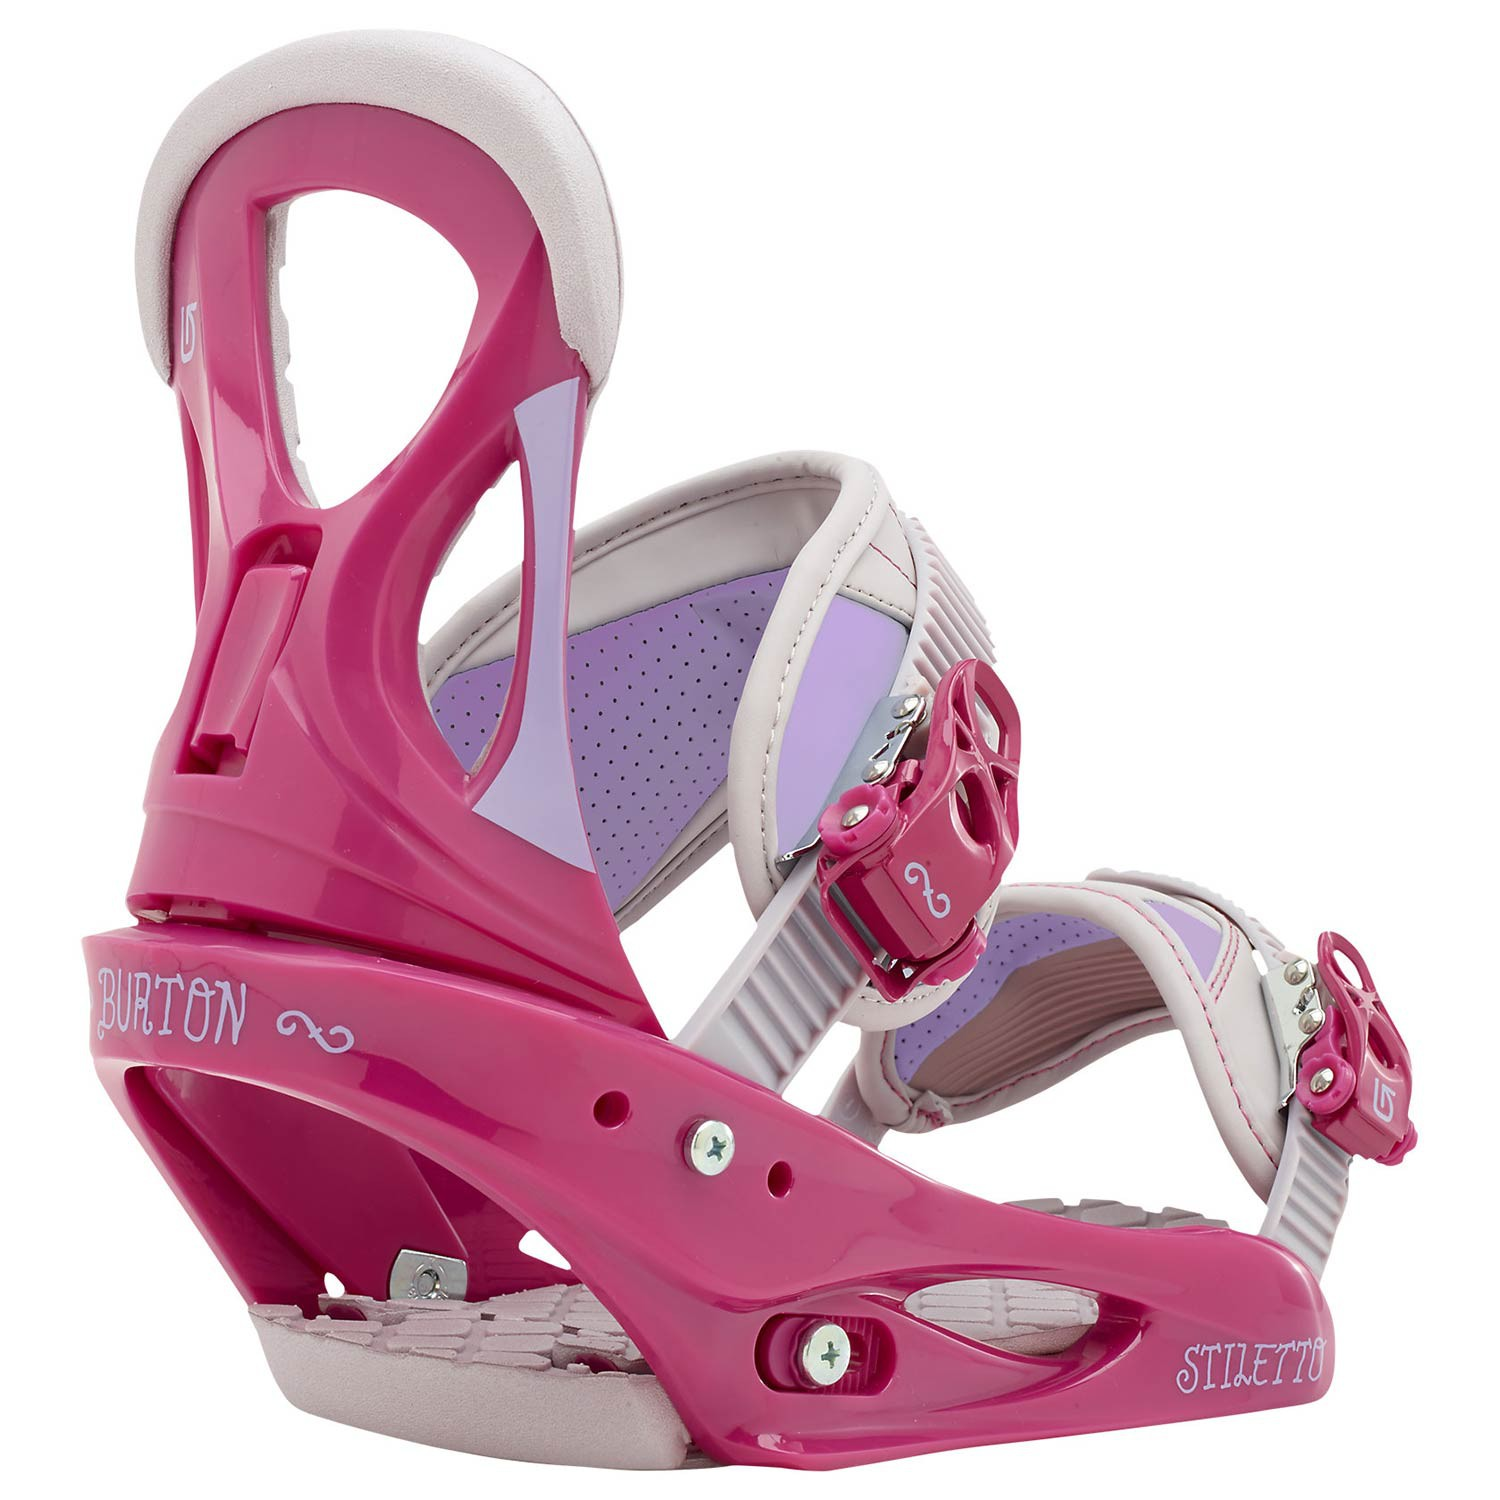 Burton Stiletto